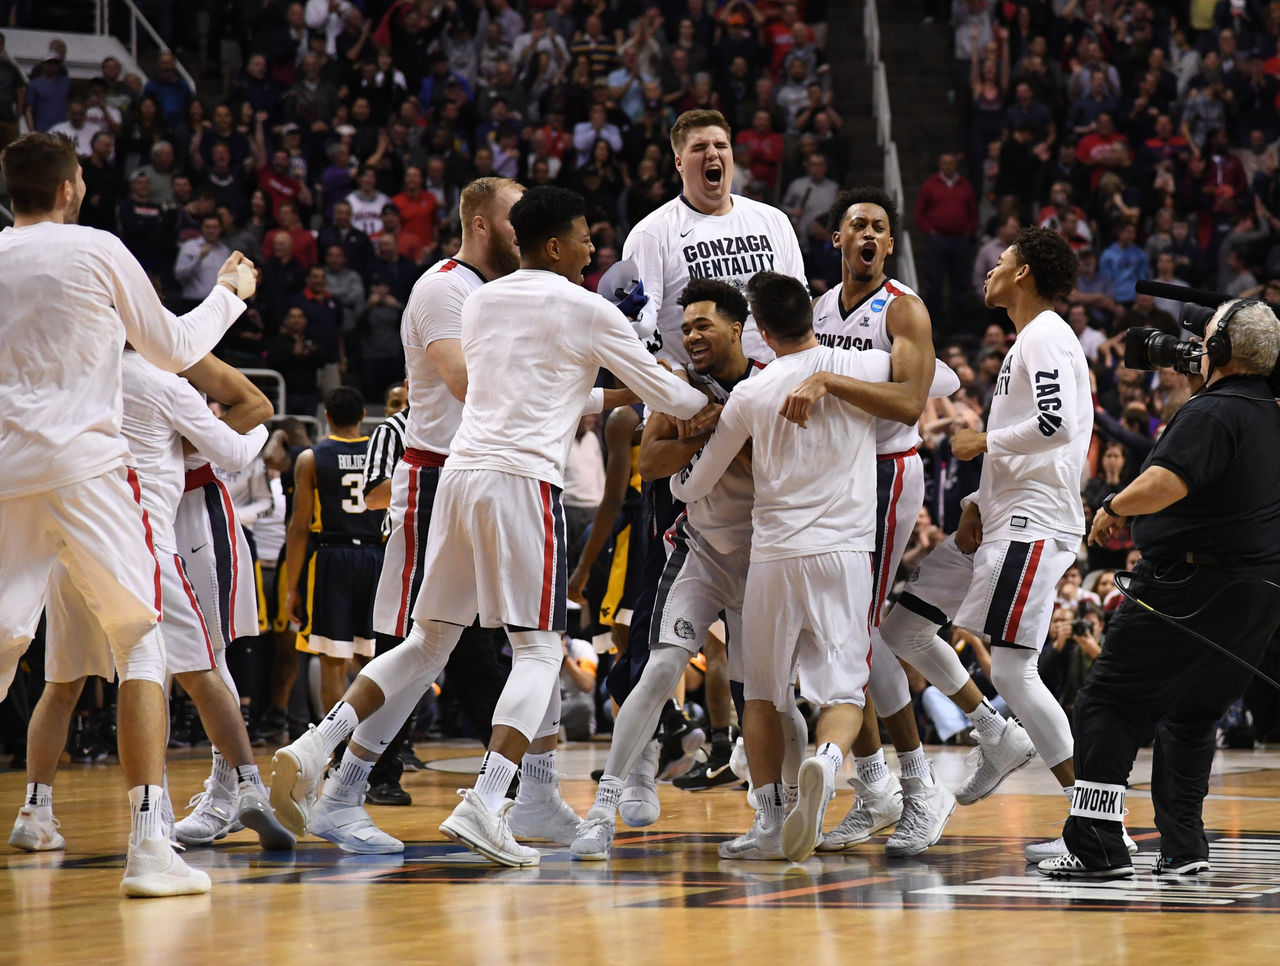 Cropped 2017 03 24t021435z 1670595582 nocid rtrmadp 3 ncaa basketball ncaa tournament west regional gonzaga vs west virginia